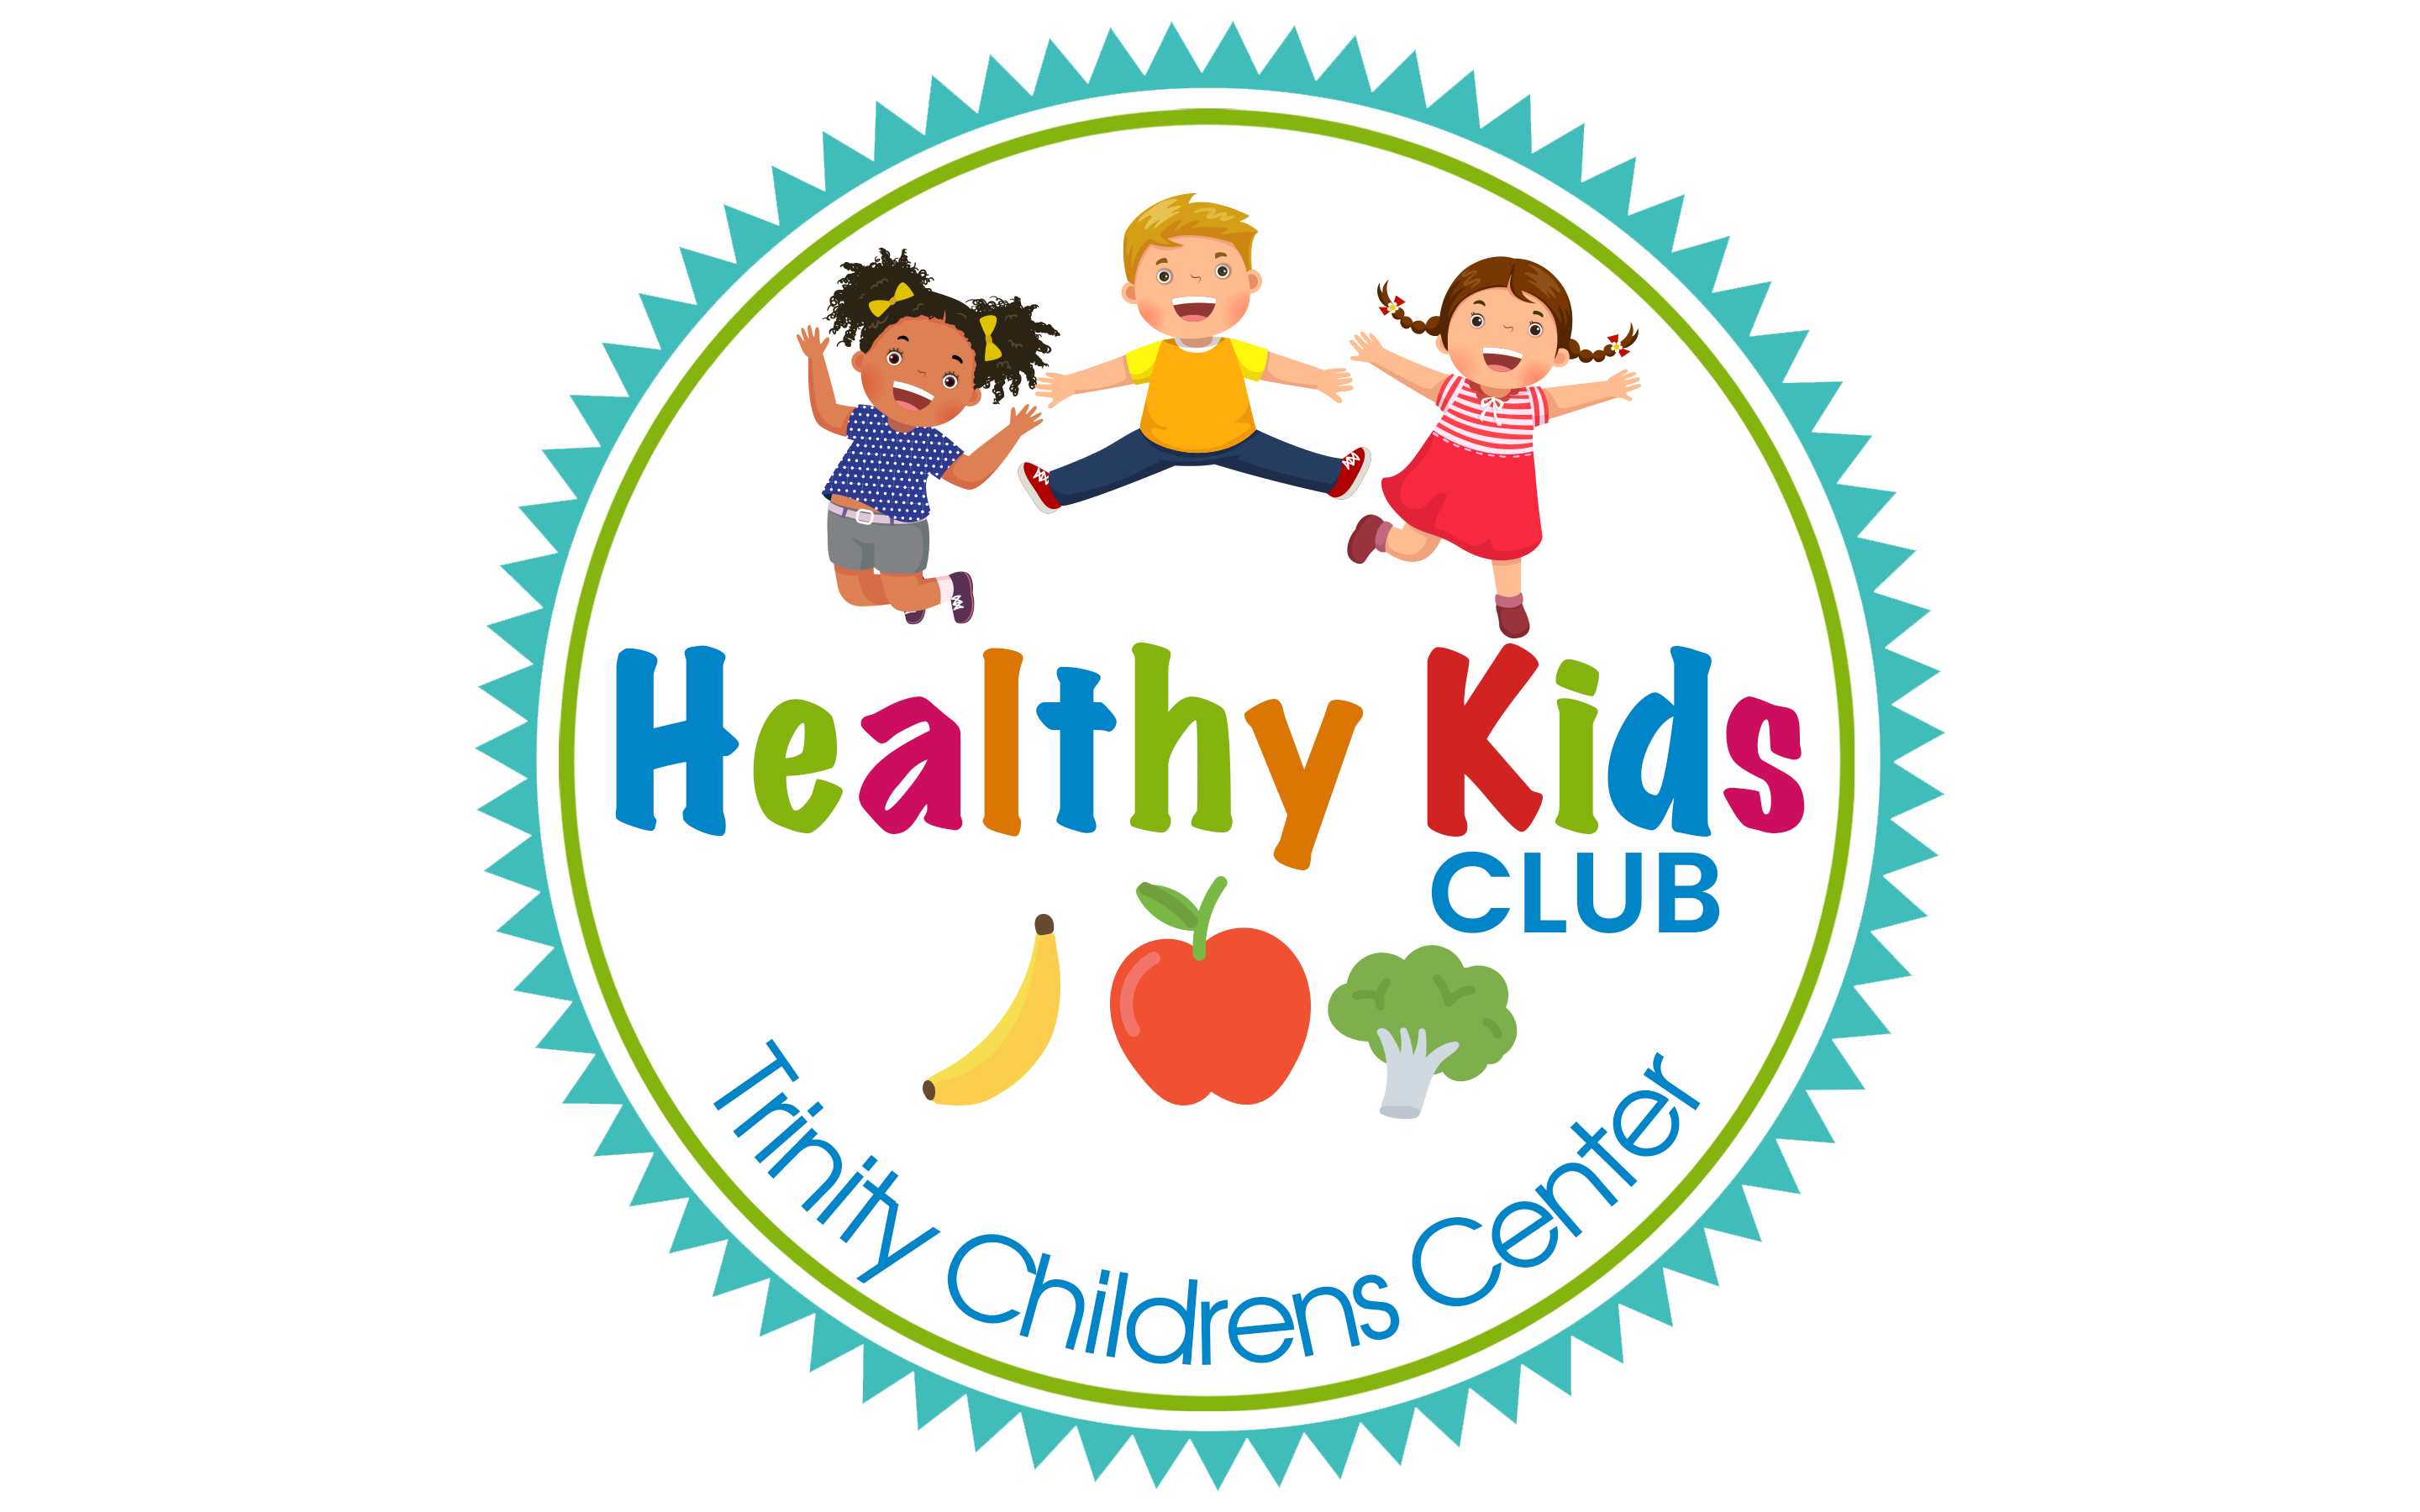 Healthy Kids Club